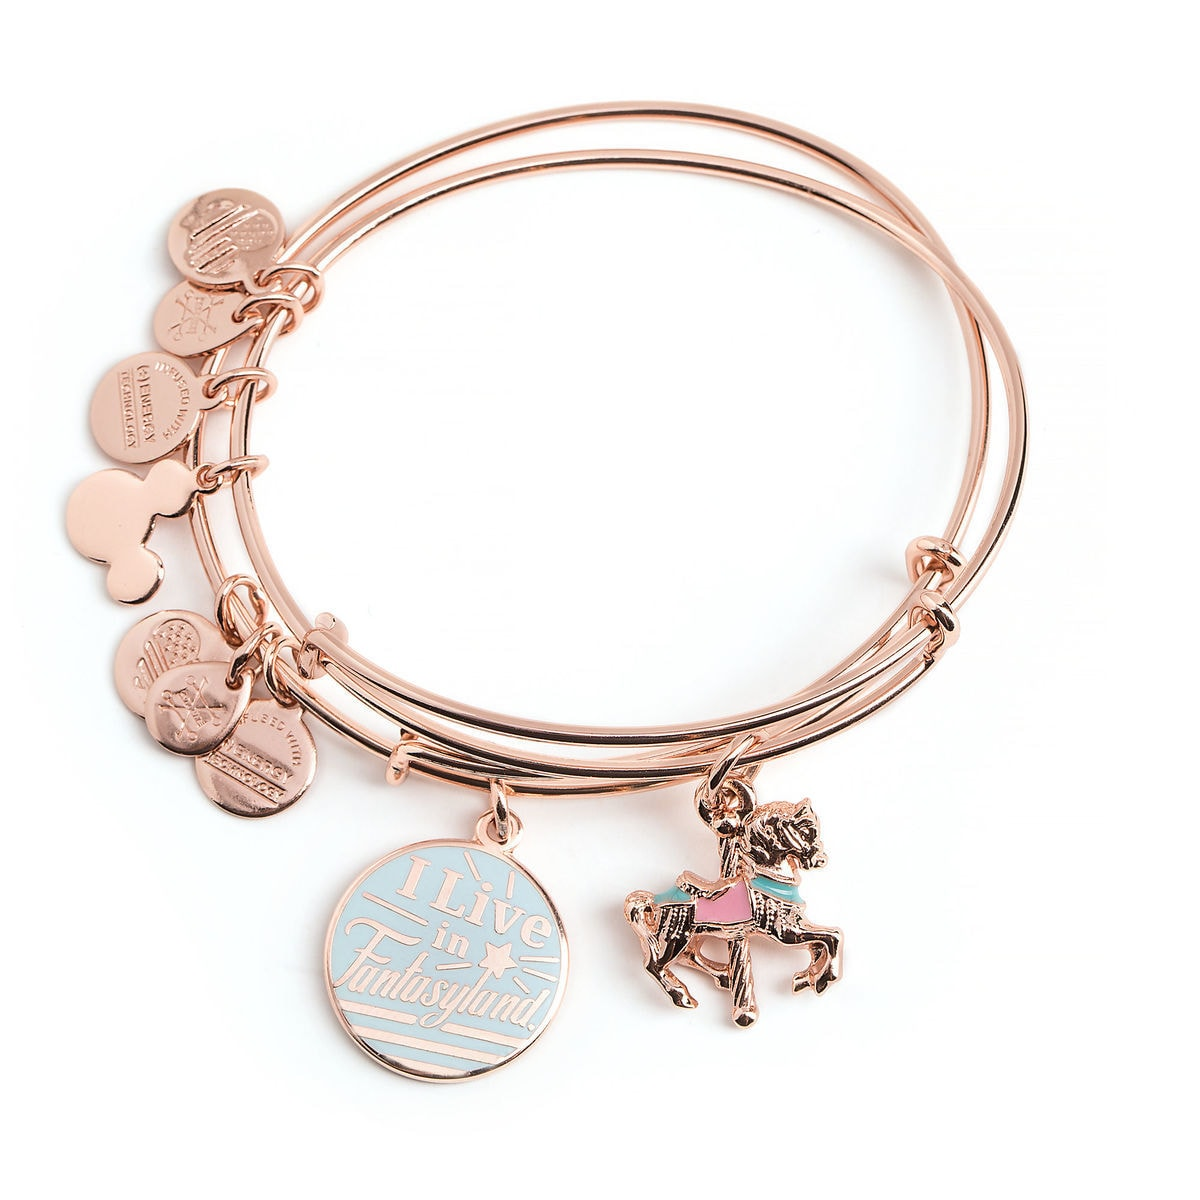 Product Image Of I Live In Fantasyland Charm Bangle By Alex And